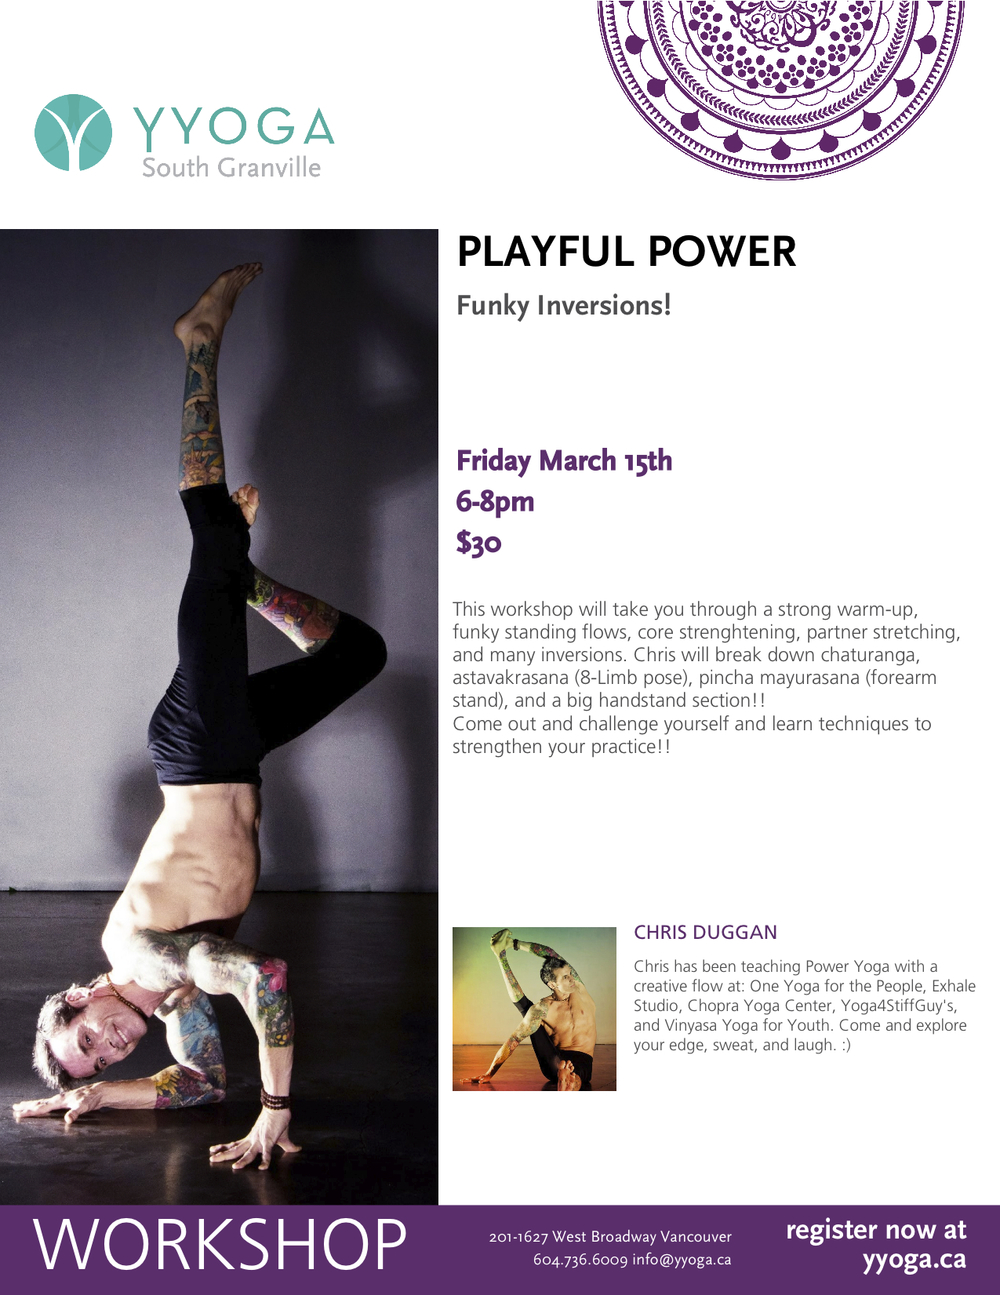 SGV - Chris Duggan - Playful Power - March 15th 2013.jpg